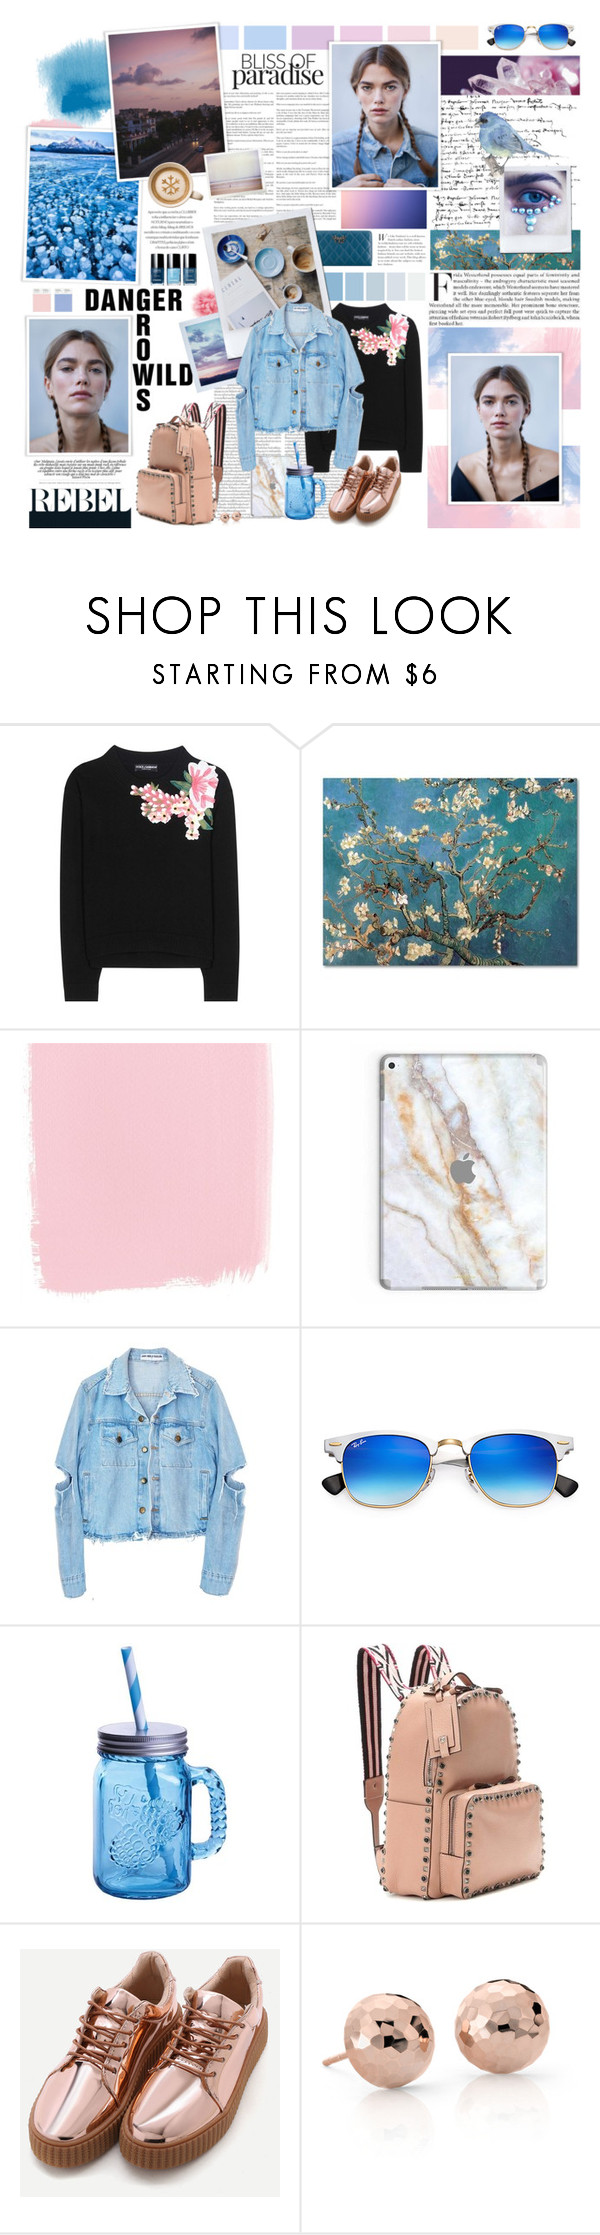 """ROSE QUARTZ /// SERENITY"" by douglasmacedo ❤ liked on Polyvore featuring Dolce&Gabbana, Ray-Ban, Fitz & Floyd, Valentino and Blue Nile"